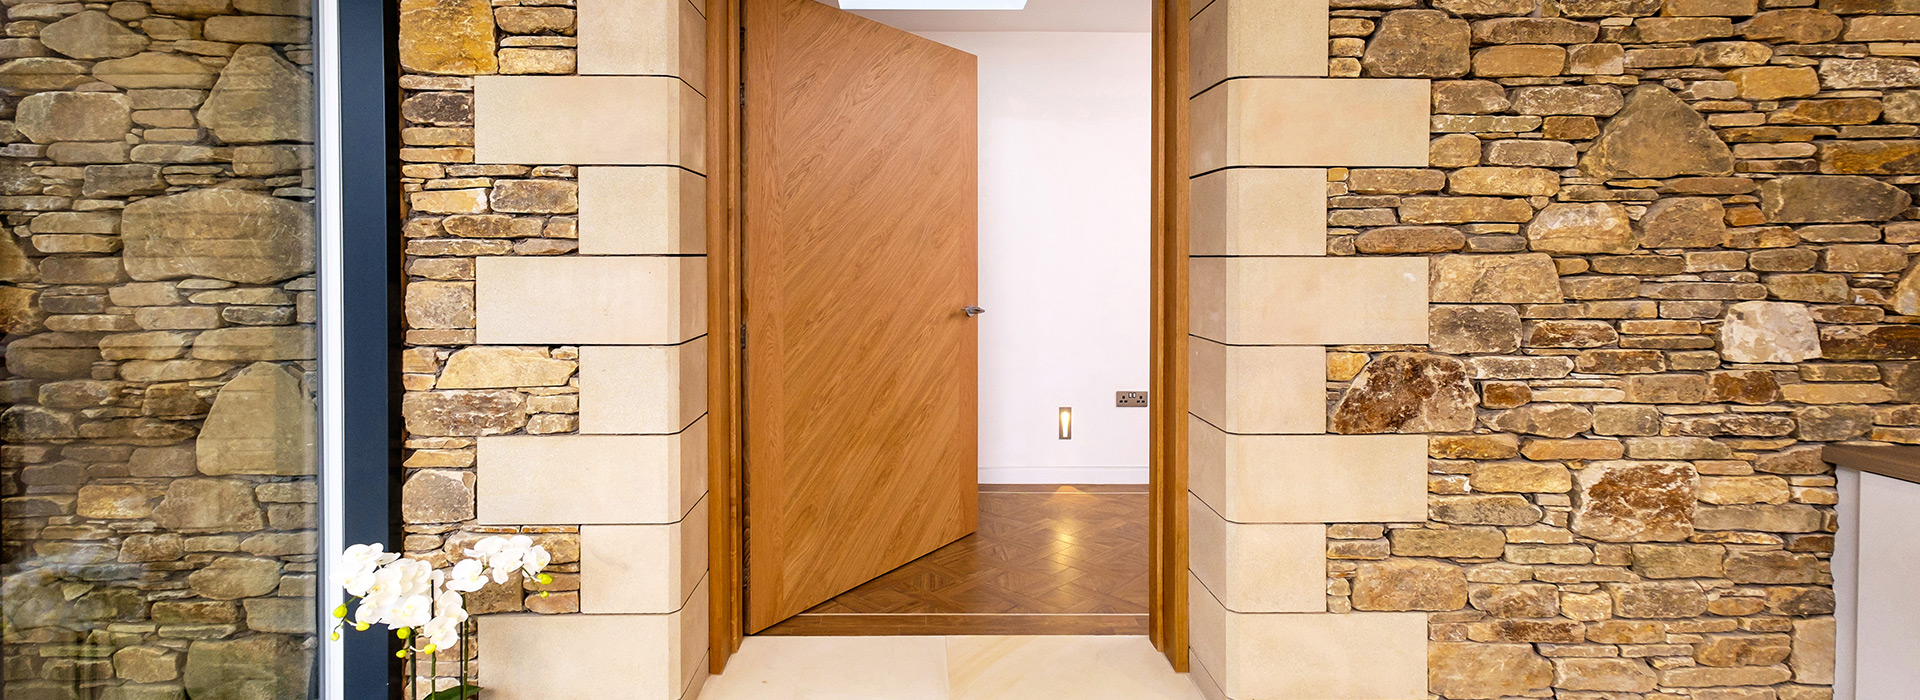 Oversized oak doors